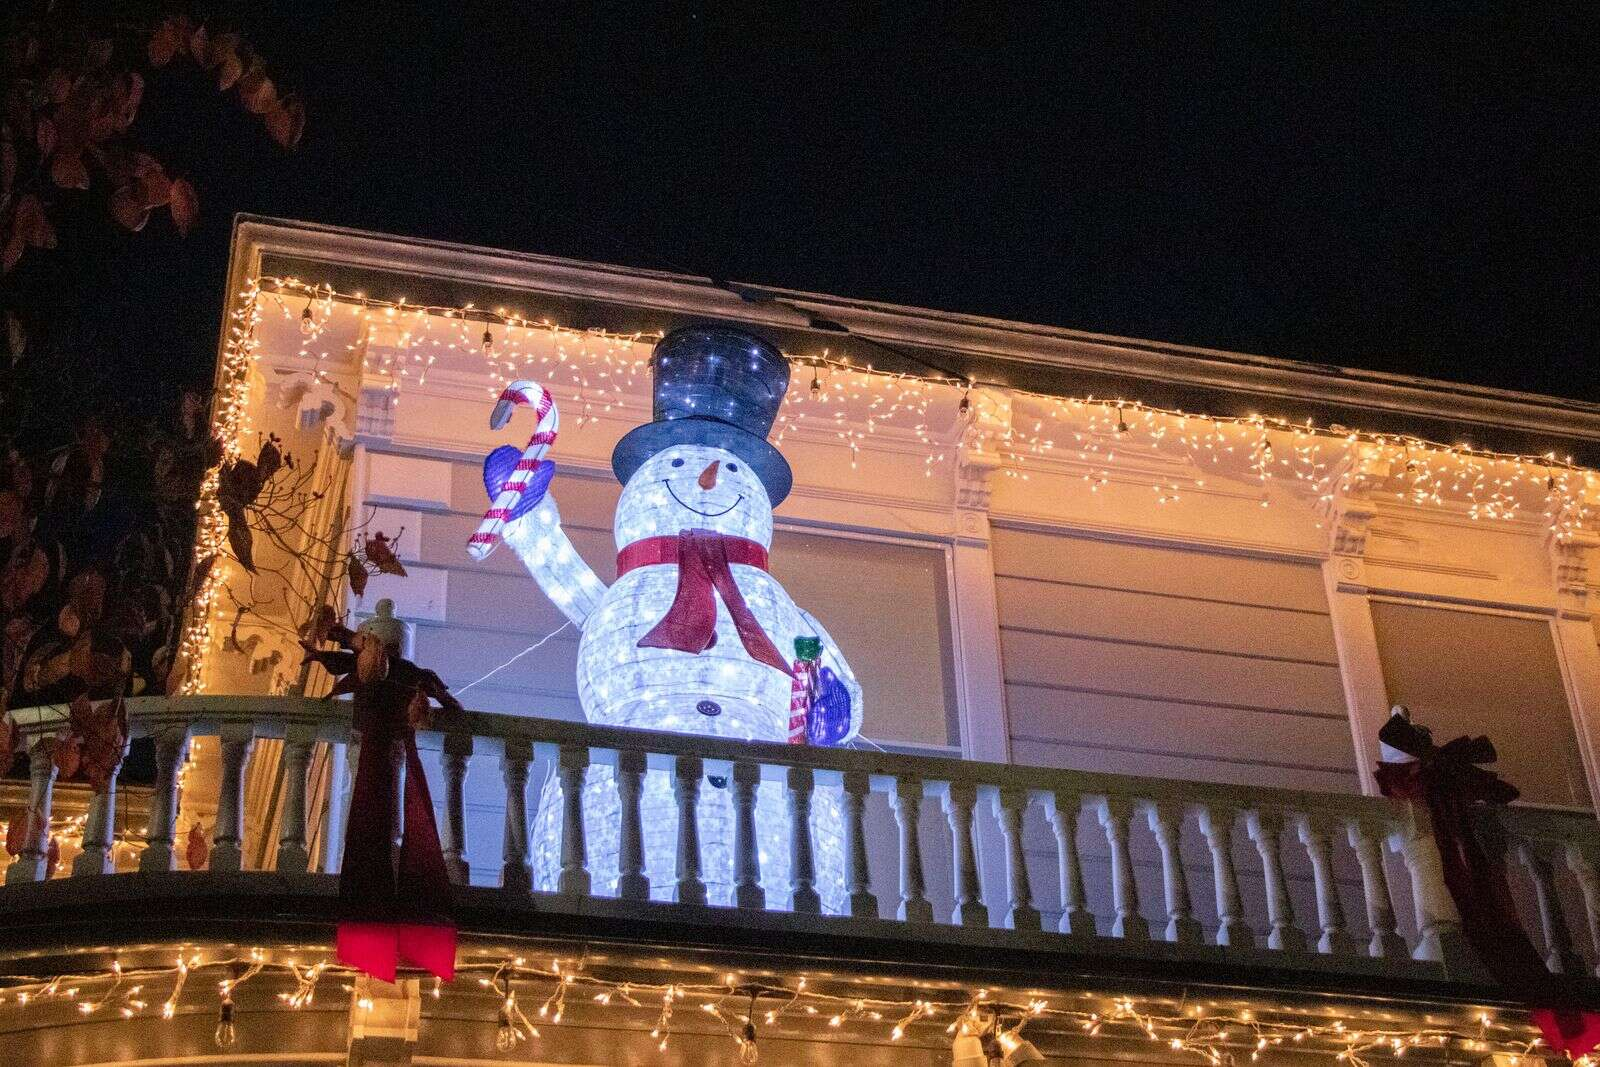 The top of Broad Street was amazing - especially the snowman at Broad Street Inn! | Submitted by Sandra Boyd